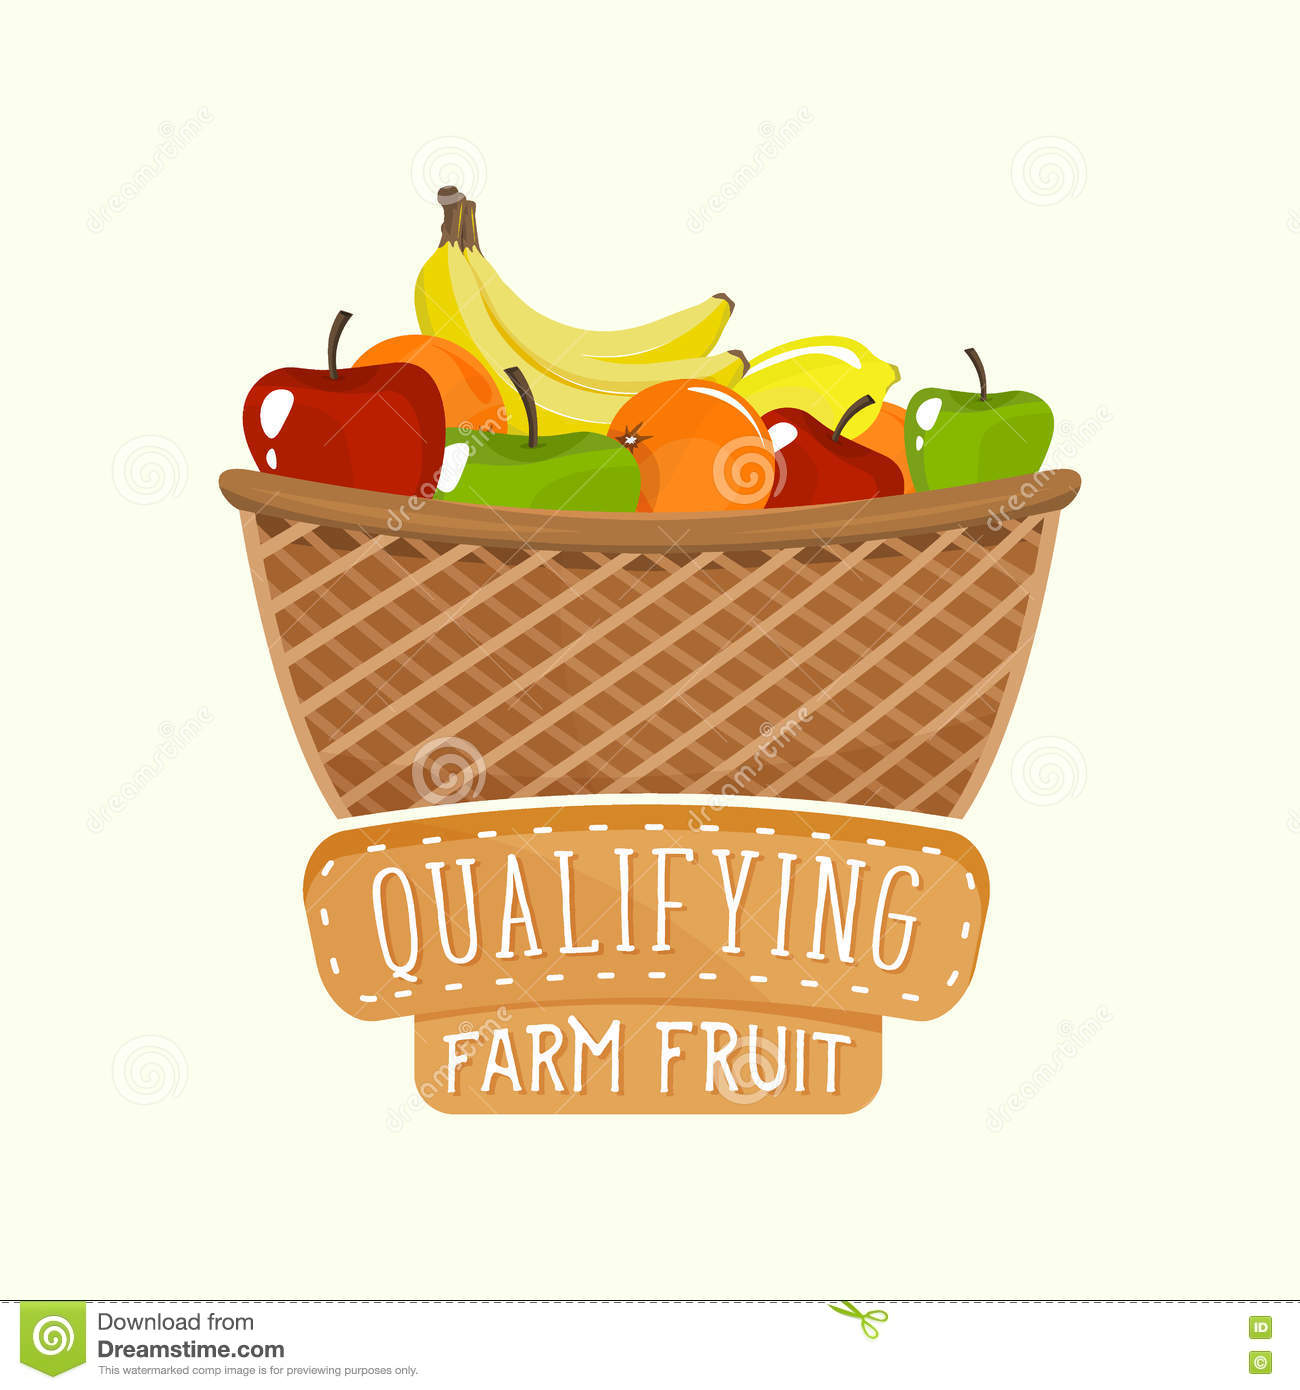 Designer Fruit Basket Logo Design Of Fruit Basket With Lettering Vector